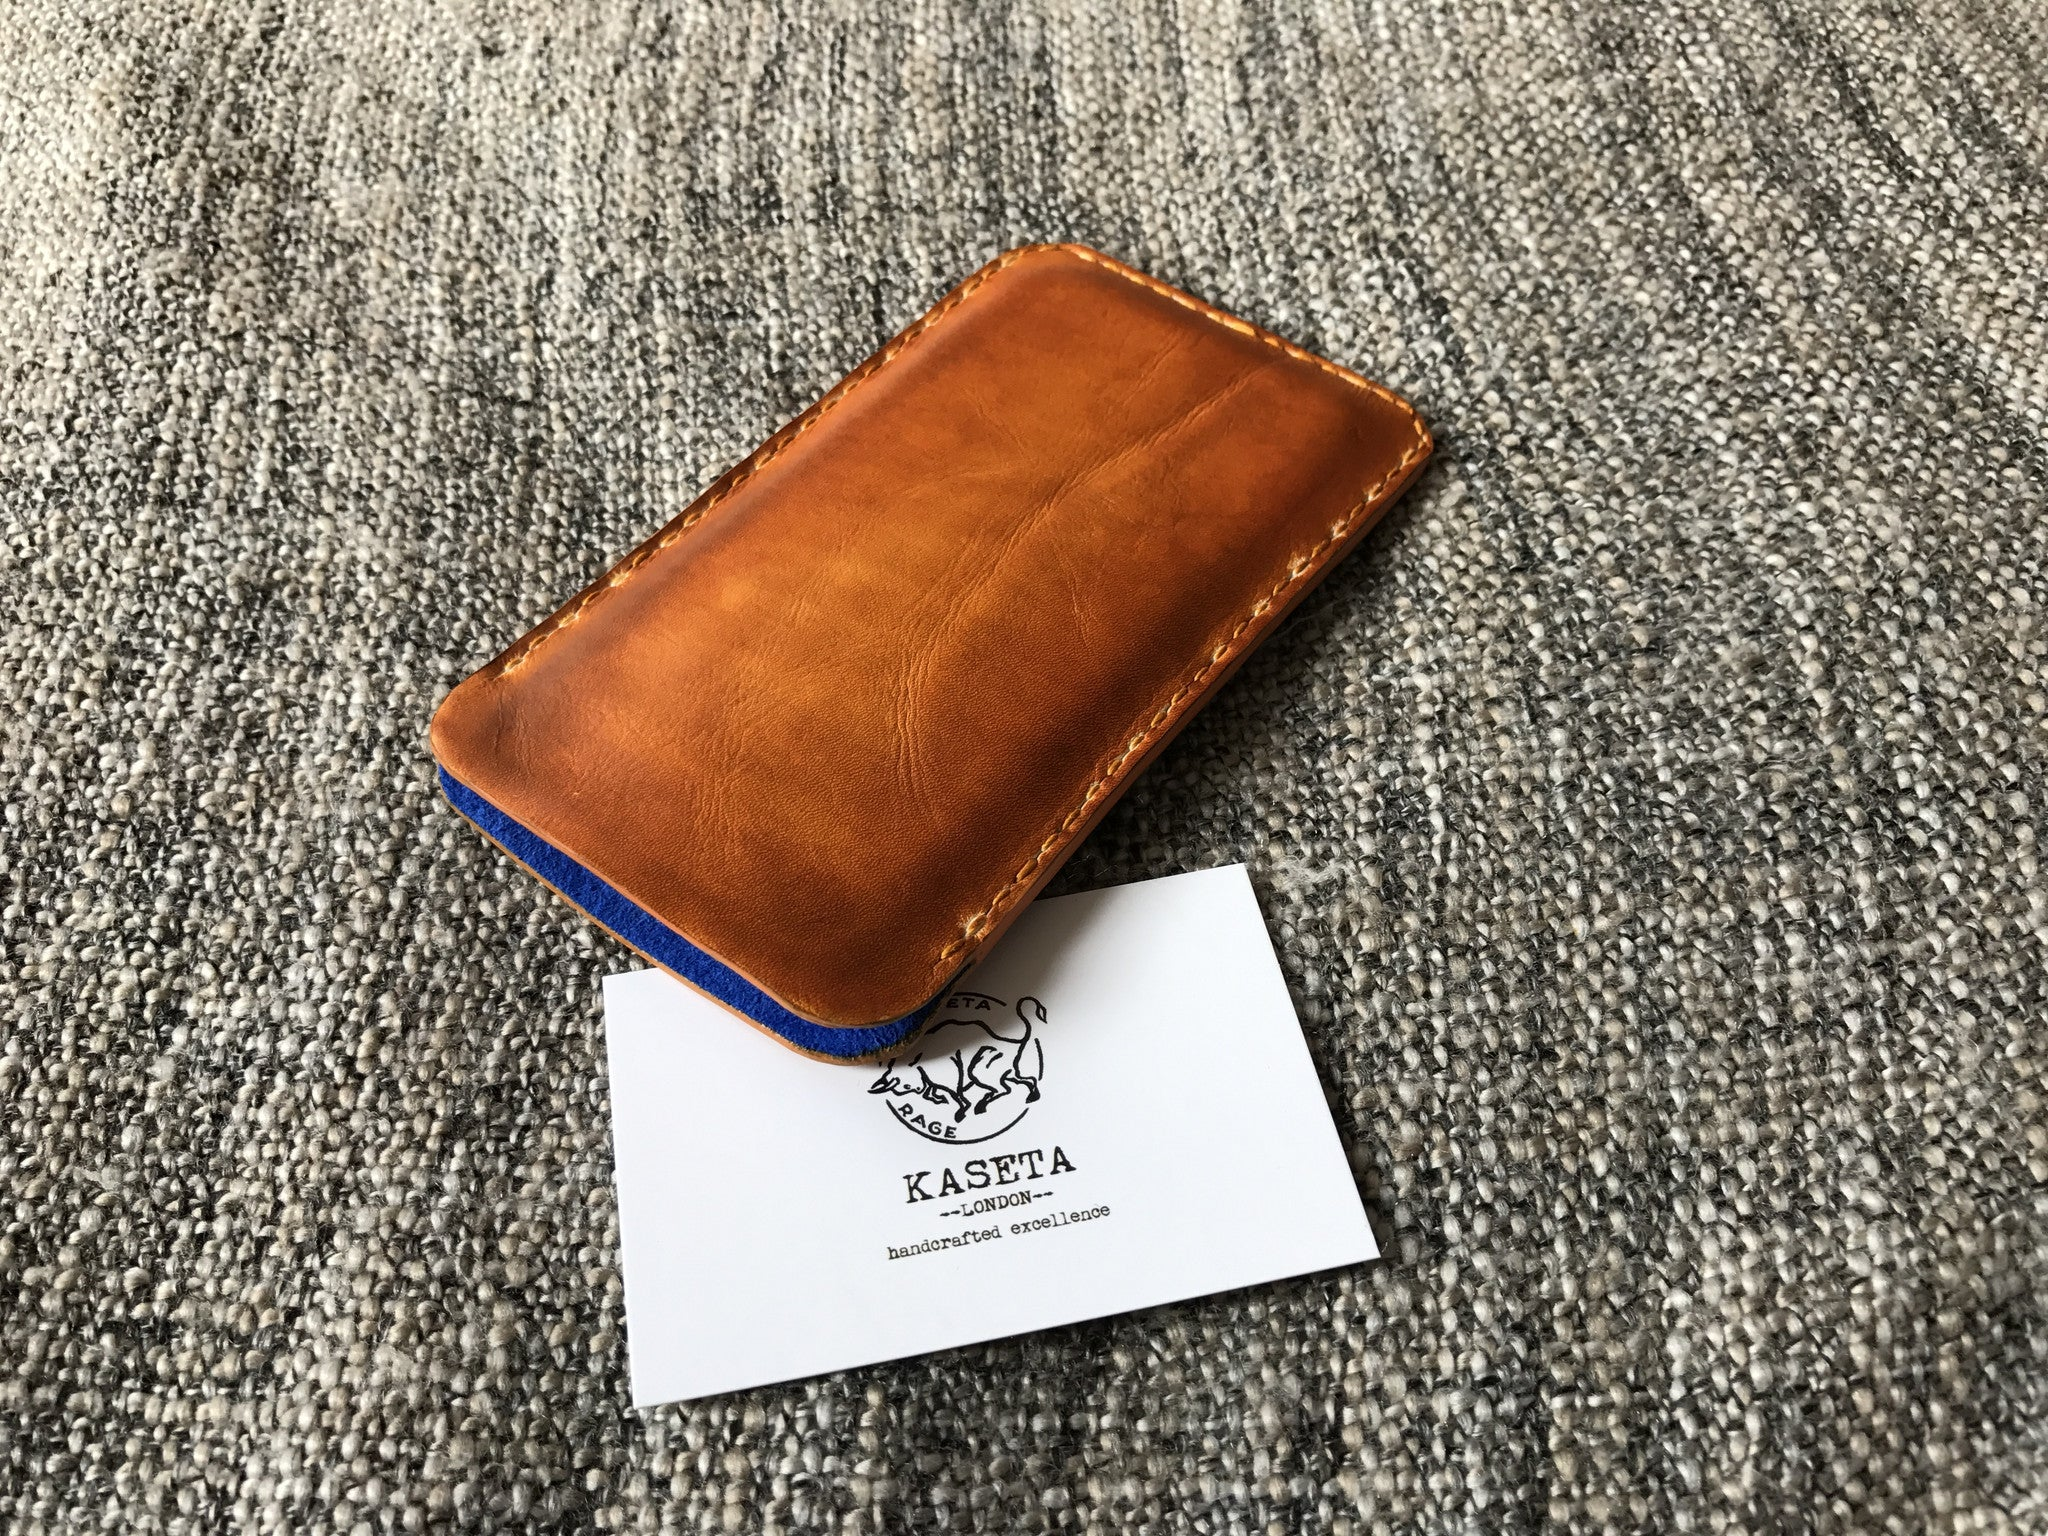 iphone7 Leather pouch,  aged leather sleeve,  læder etui iphone 7,  Étui en cuir iphone